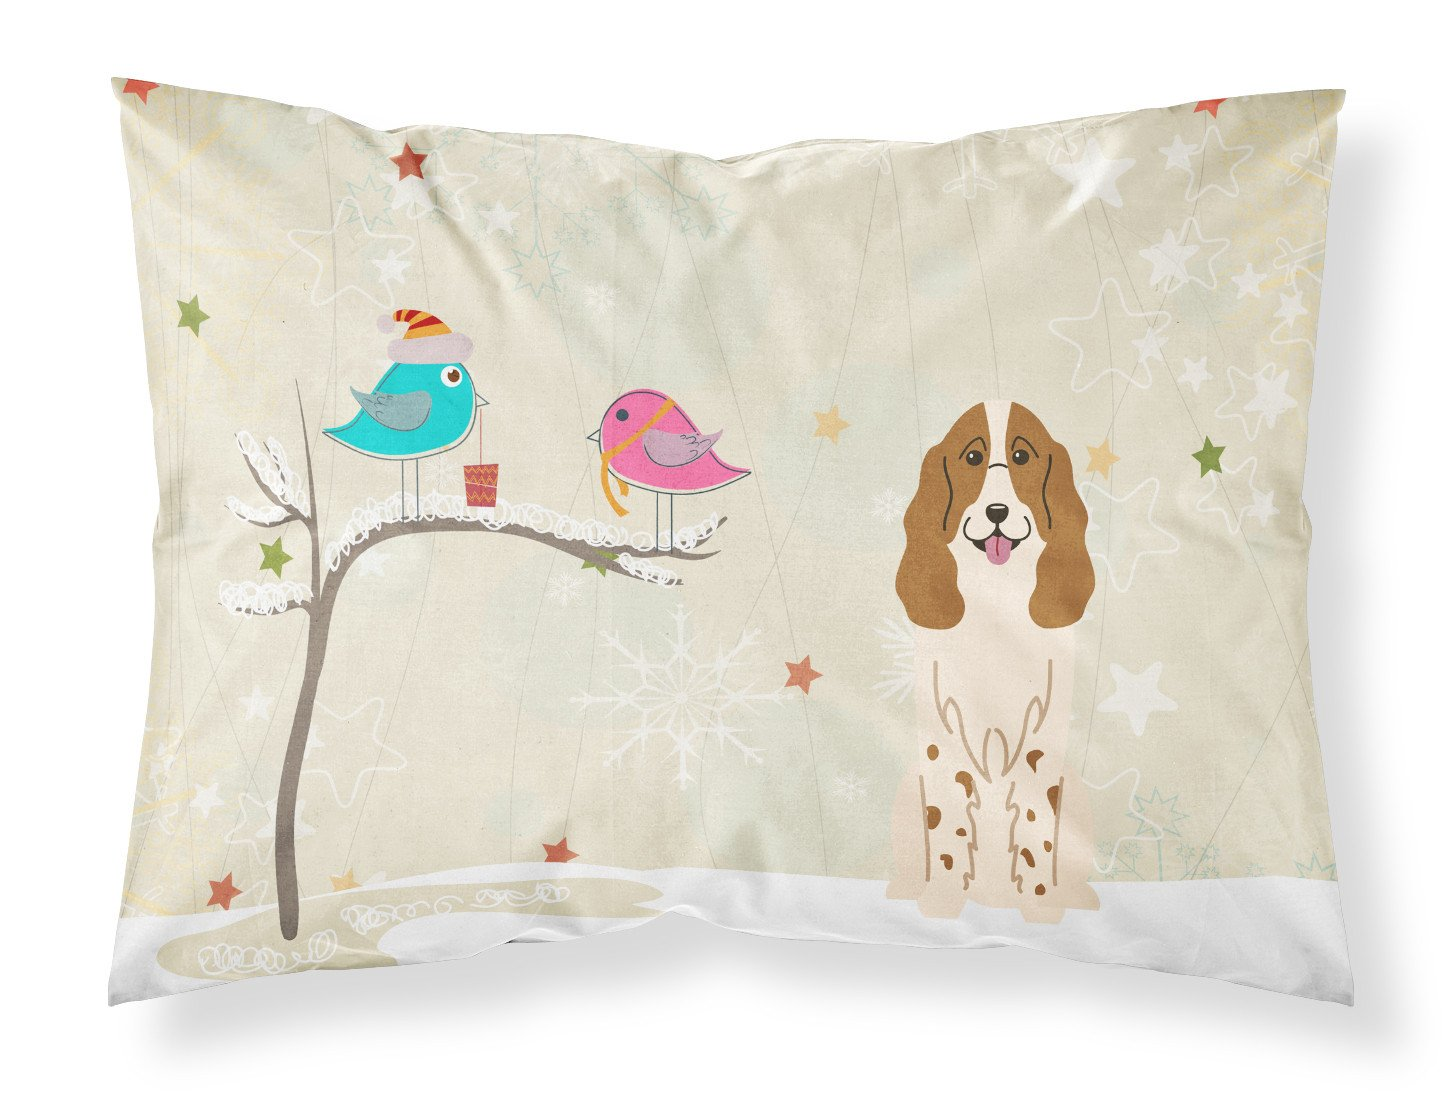 Christmas Presents between Friends Russian Spaniel Fabric Standard Pillowcase BB2503PILLOWCASE by Caroline's Treasures